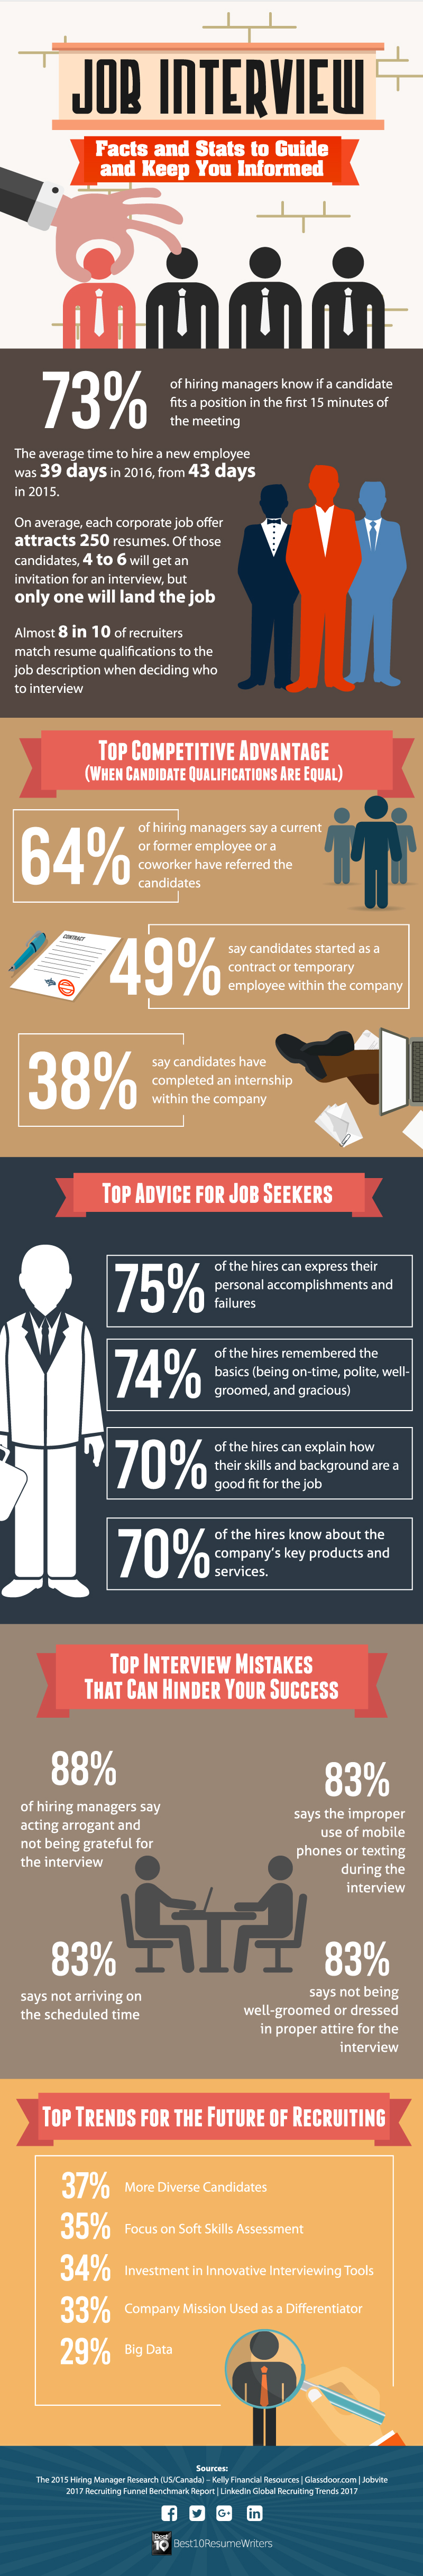 Lovely Job Interview Facts And Stats   Best10ResumeWriters